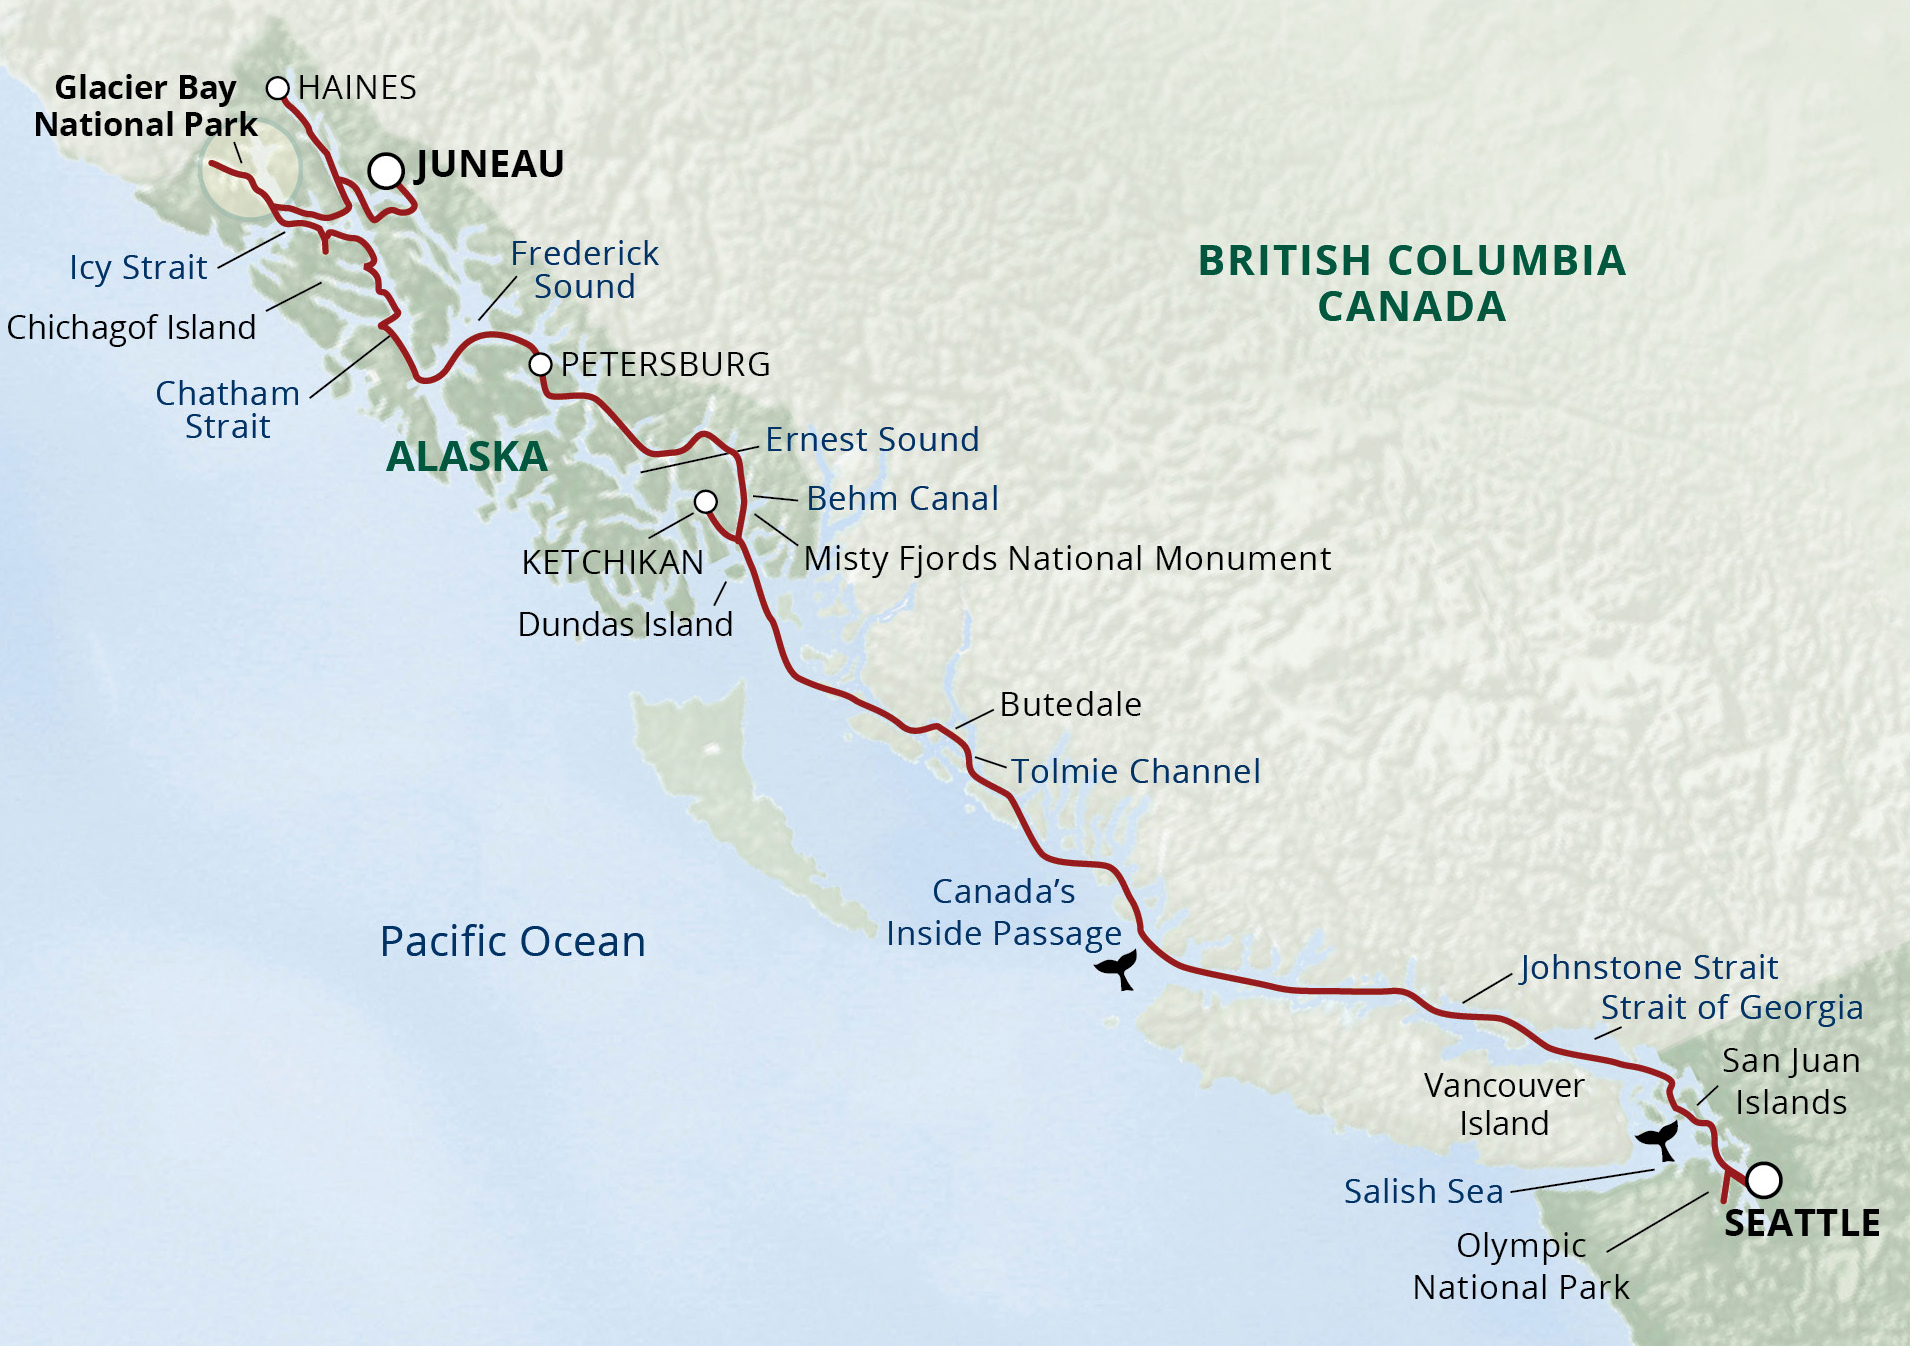 Alaska's Inside Passage & San Juan Cruise map